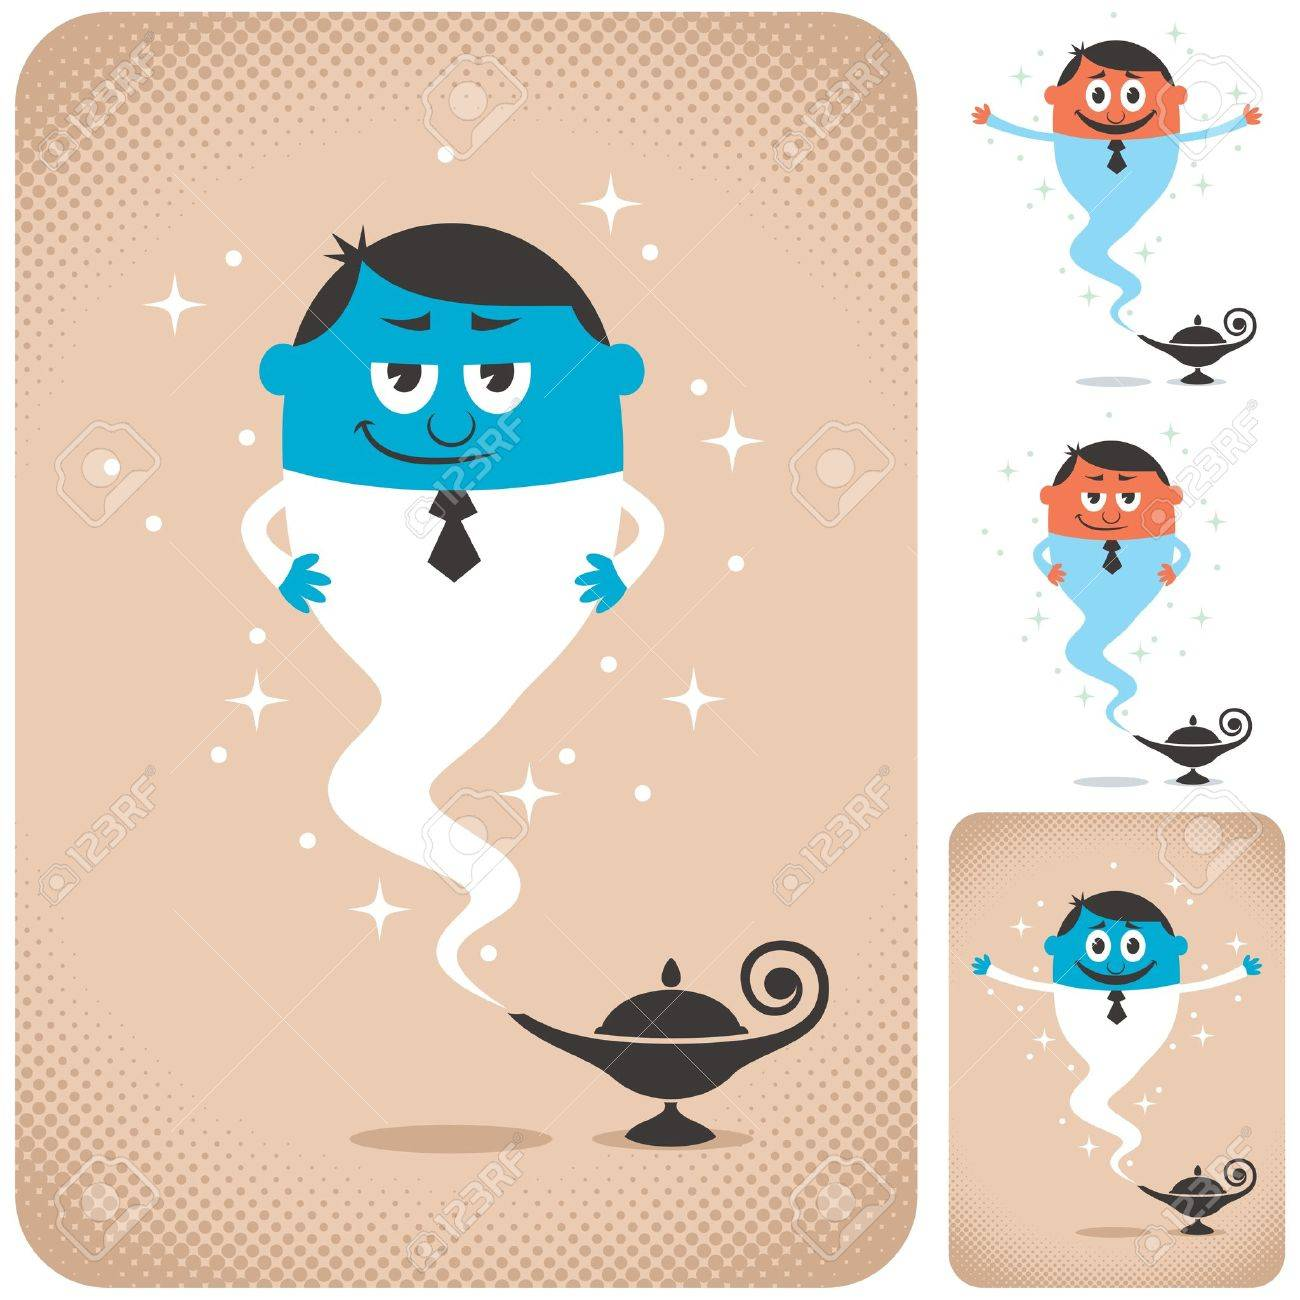 Genie coming out of magic lamp. The illustration is in 4 different versions. Stock Vector - 17792068